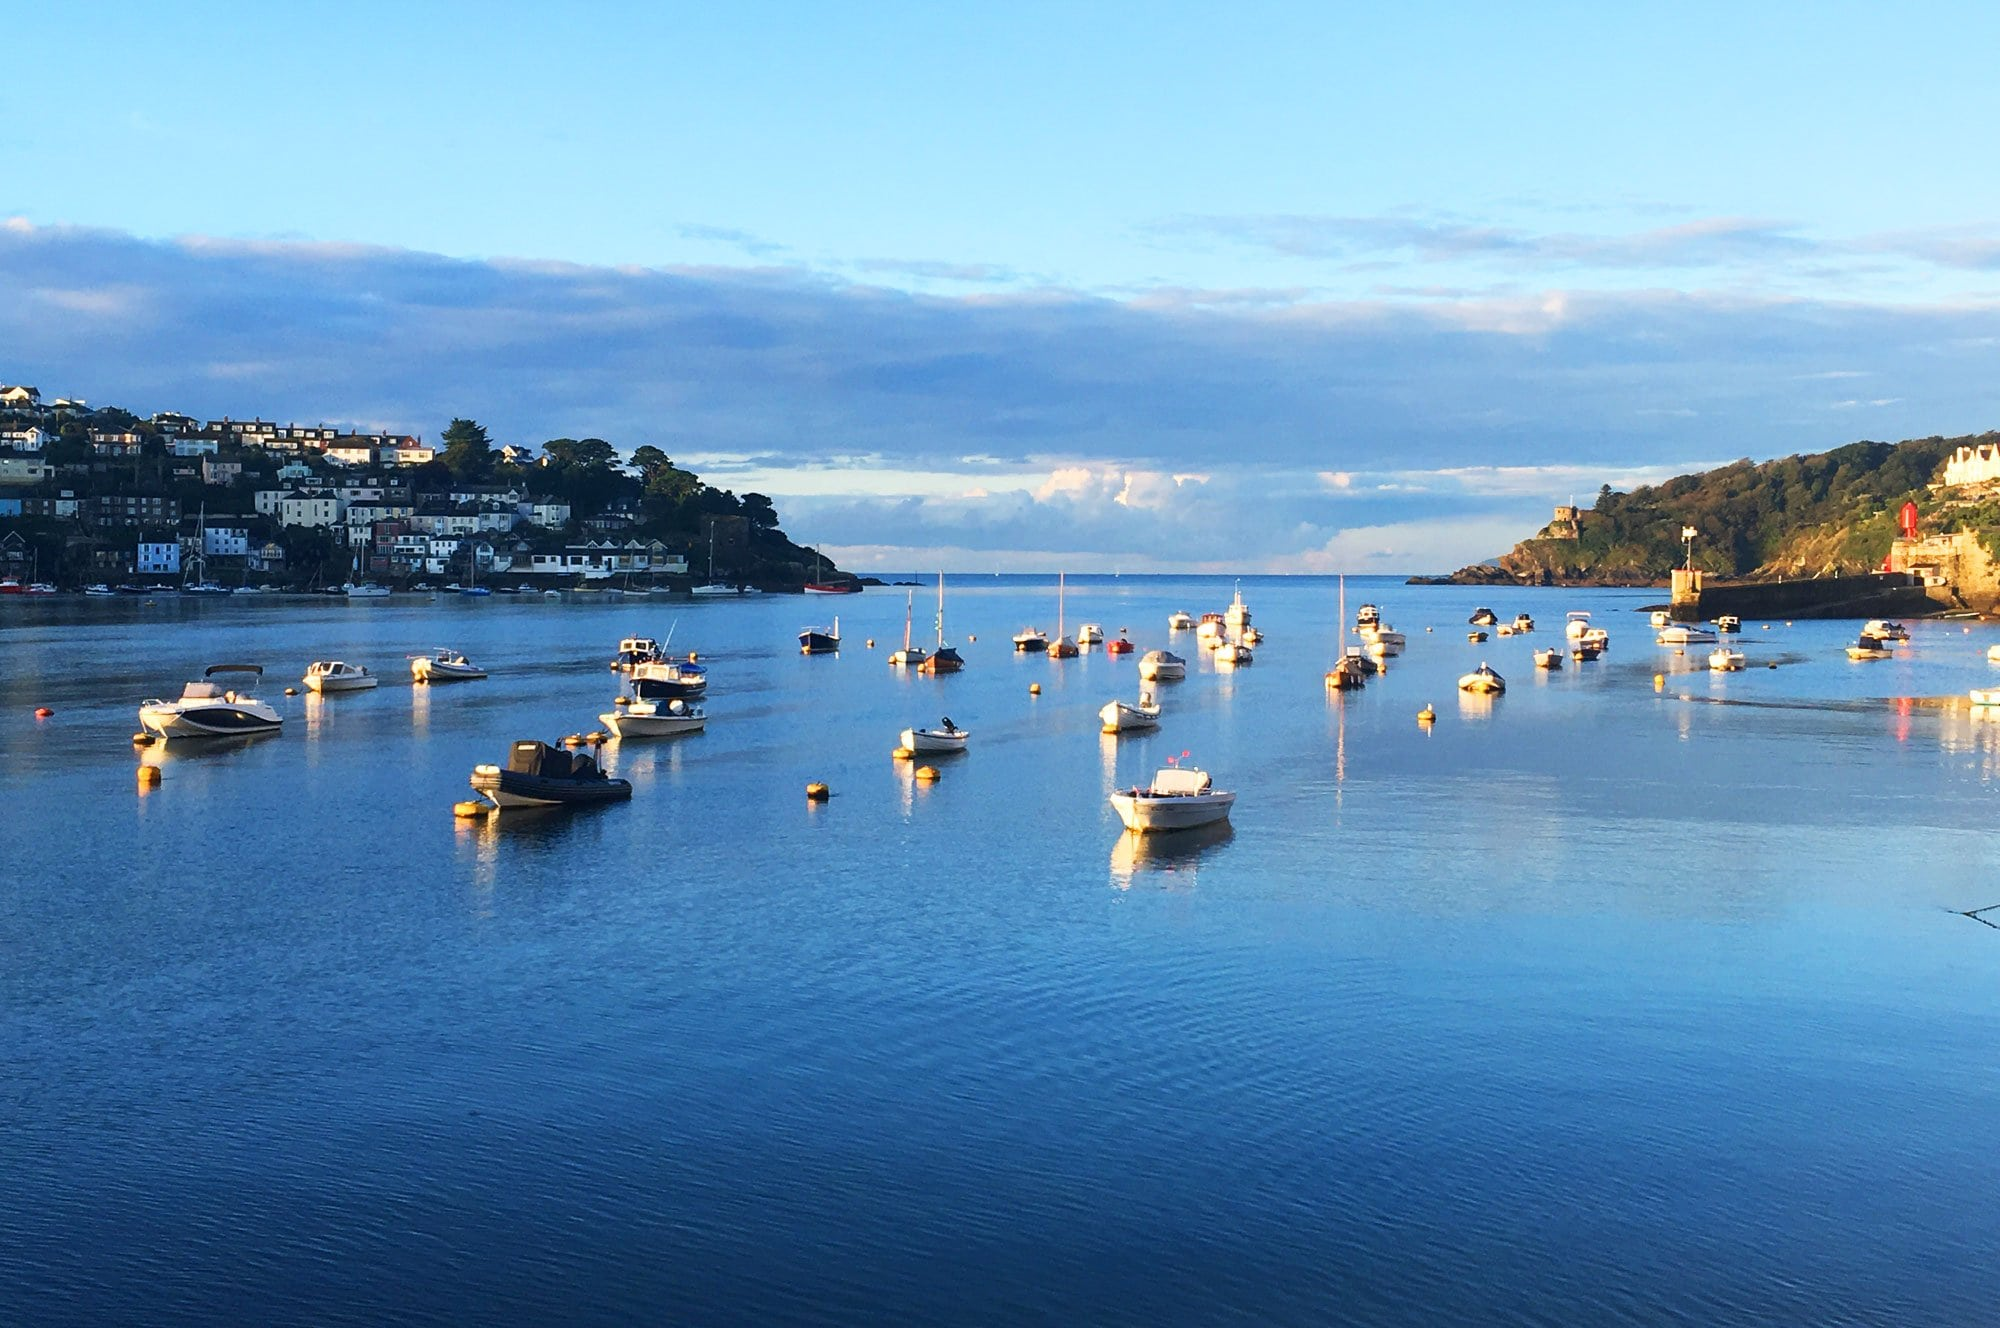 Fowey Cottages - View of Fowey Harbour